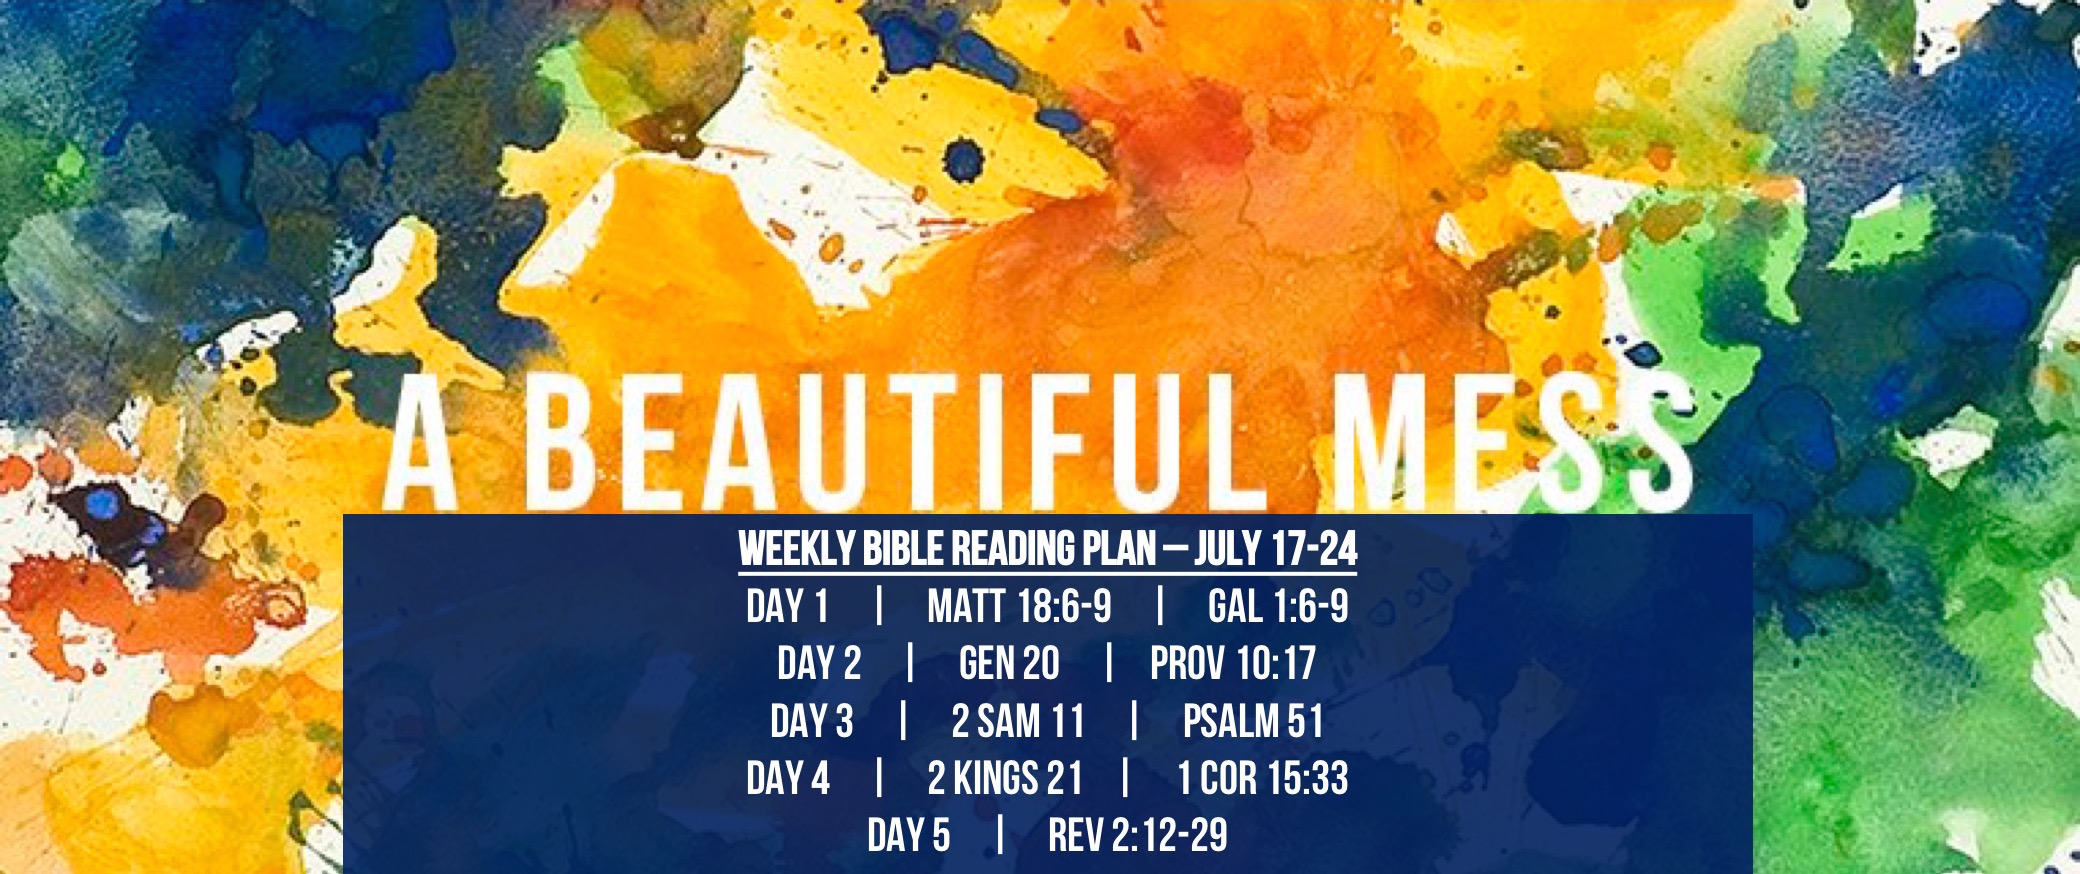 Matt 18.6-9 - Reading Plan -  July 17-24.2016 - A Beautiful Mess - Stumbling Church